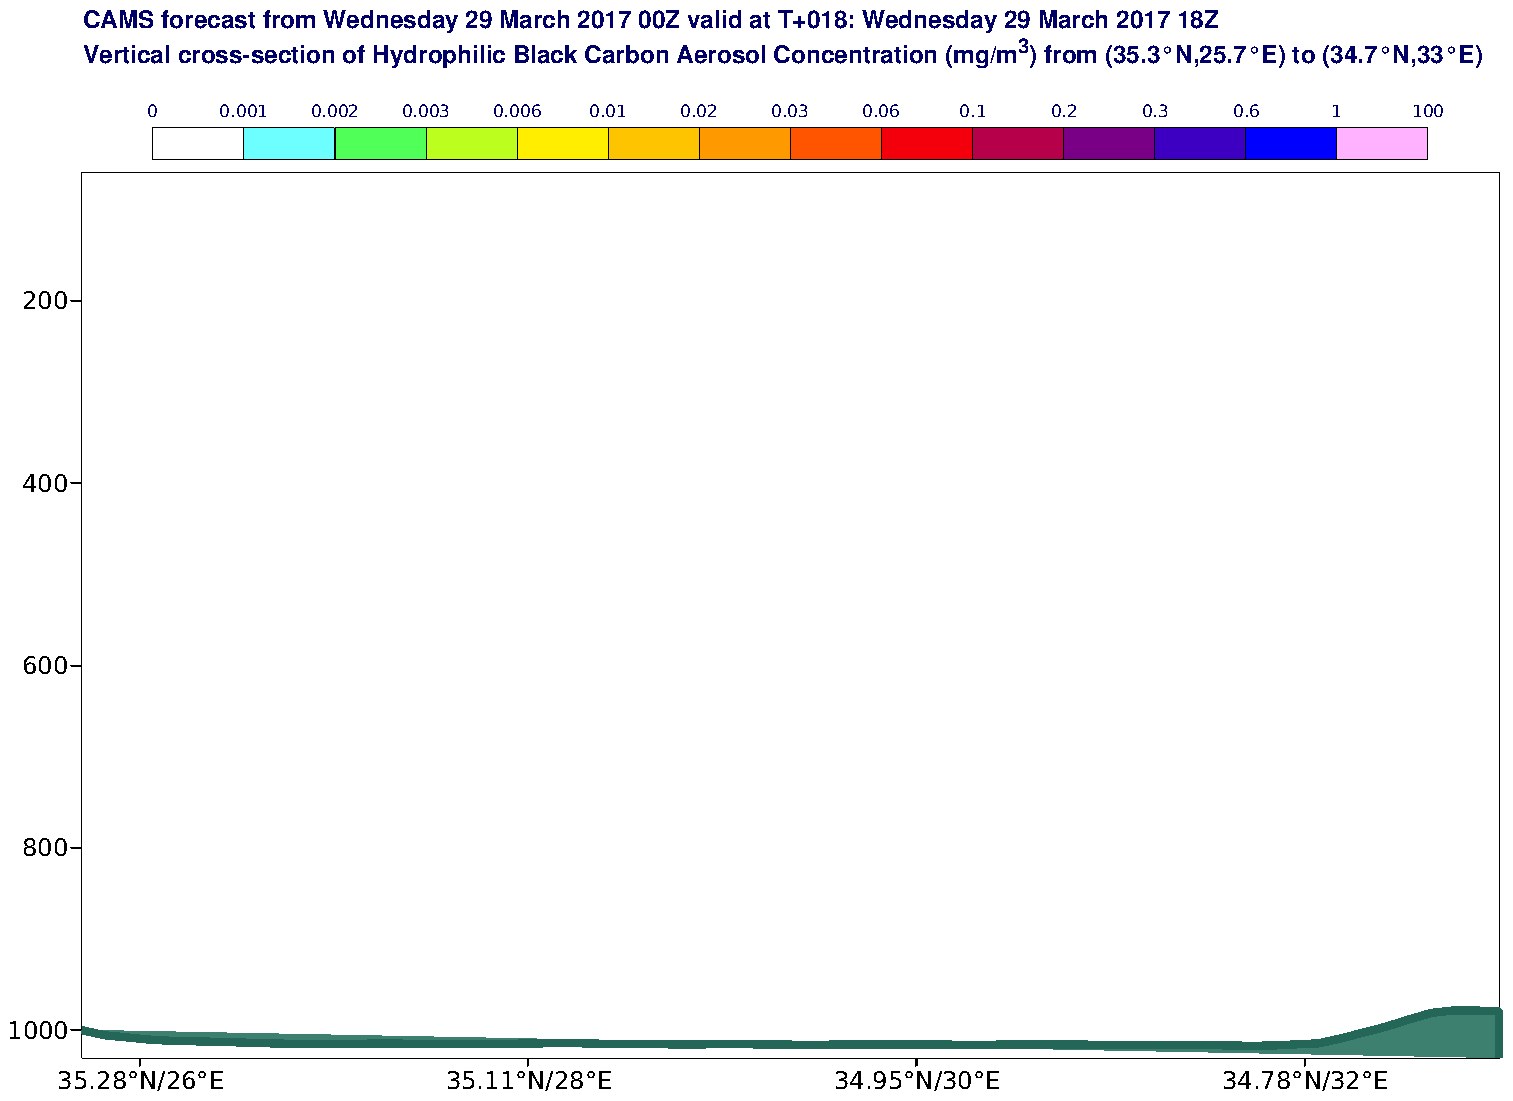 Vertical cross-section of Hydrophilic Black Carbon Aerosol Concentration (mg/m3) valid at T18 - 2017-03-29 18:00